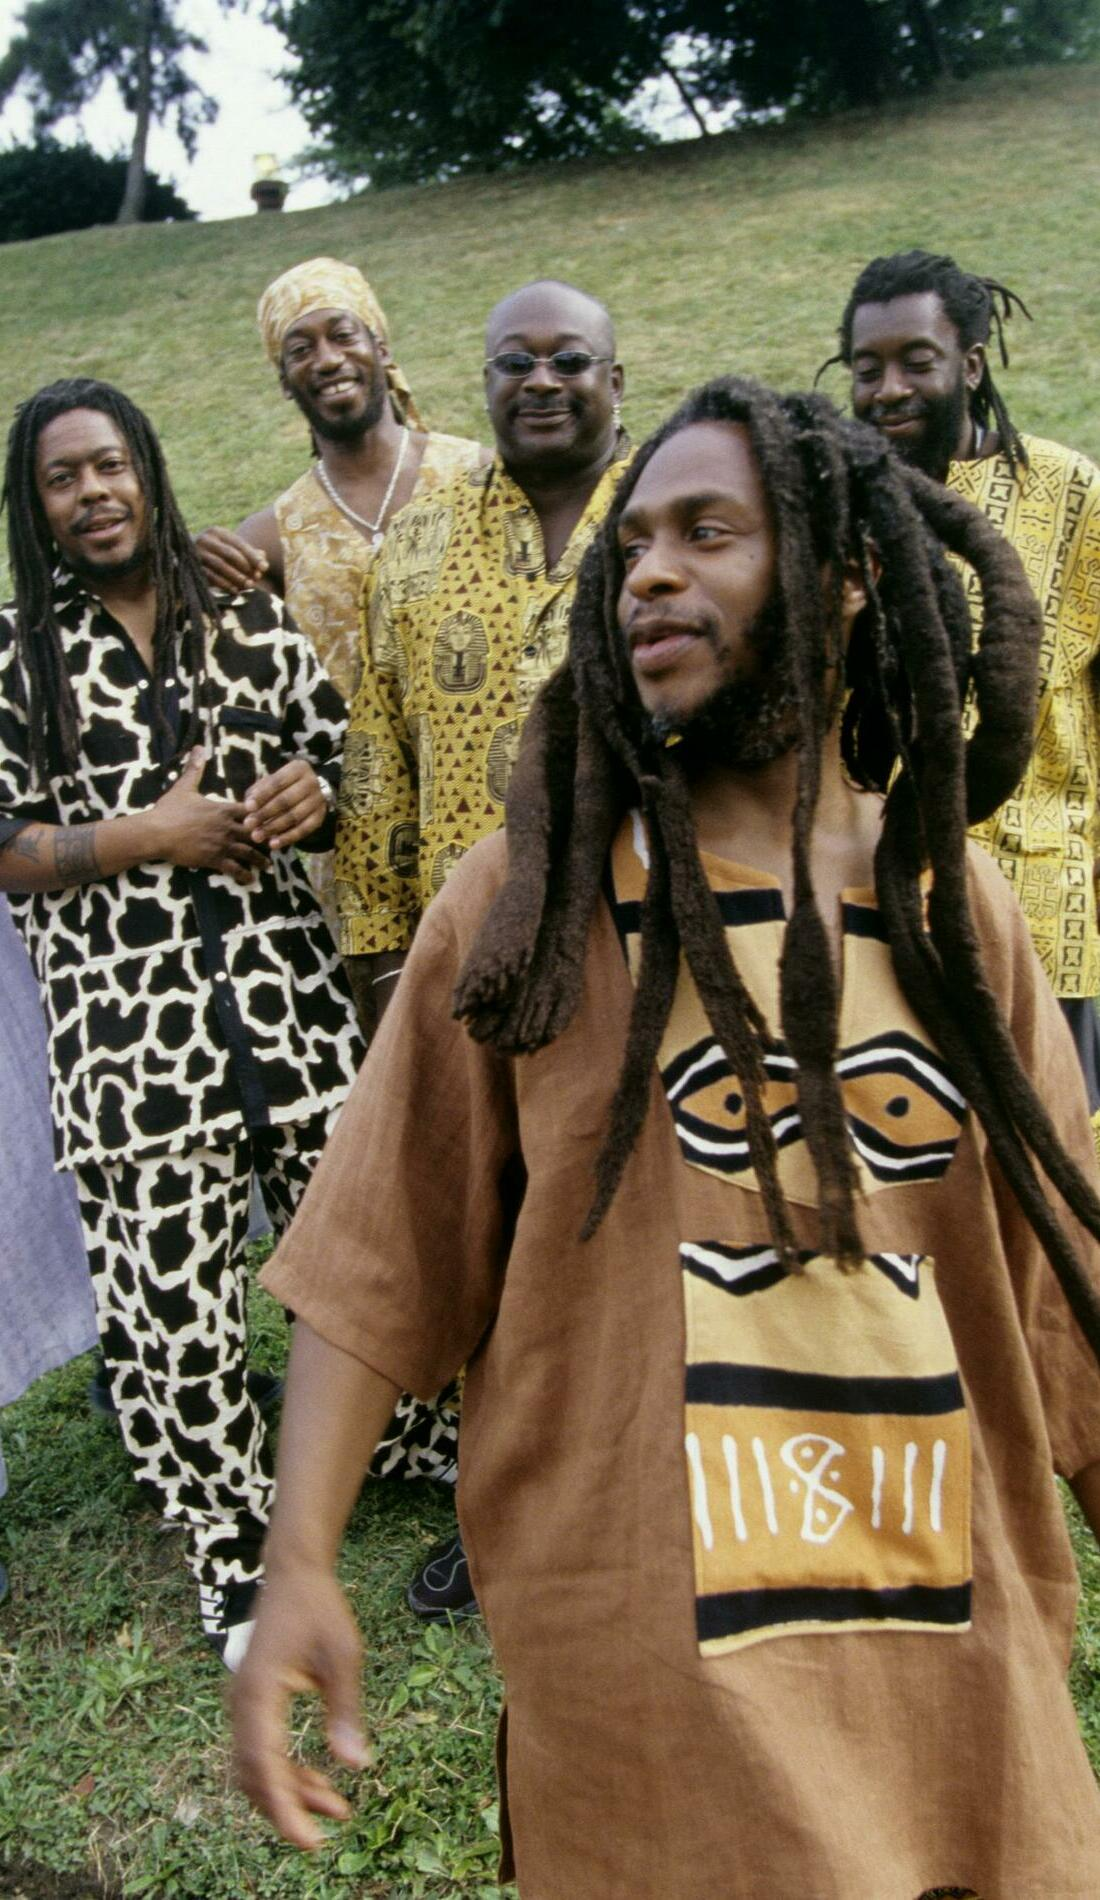 A Steel Pulse live event